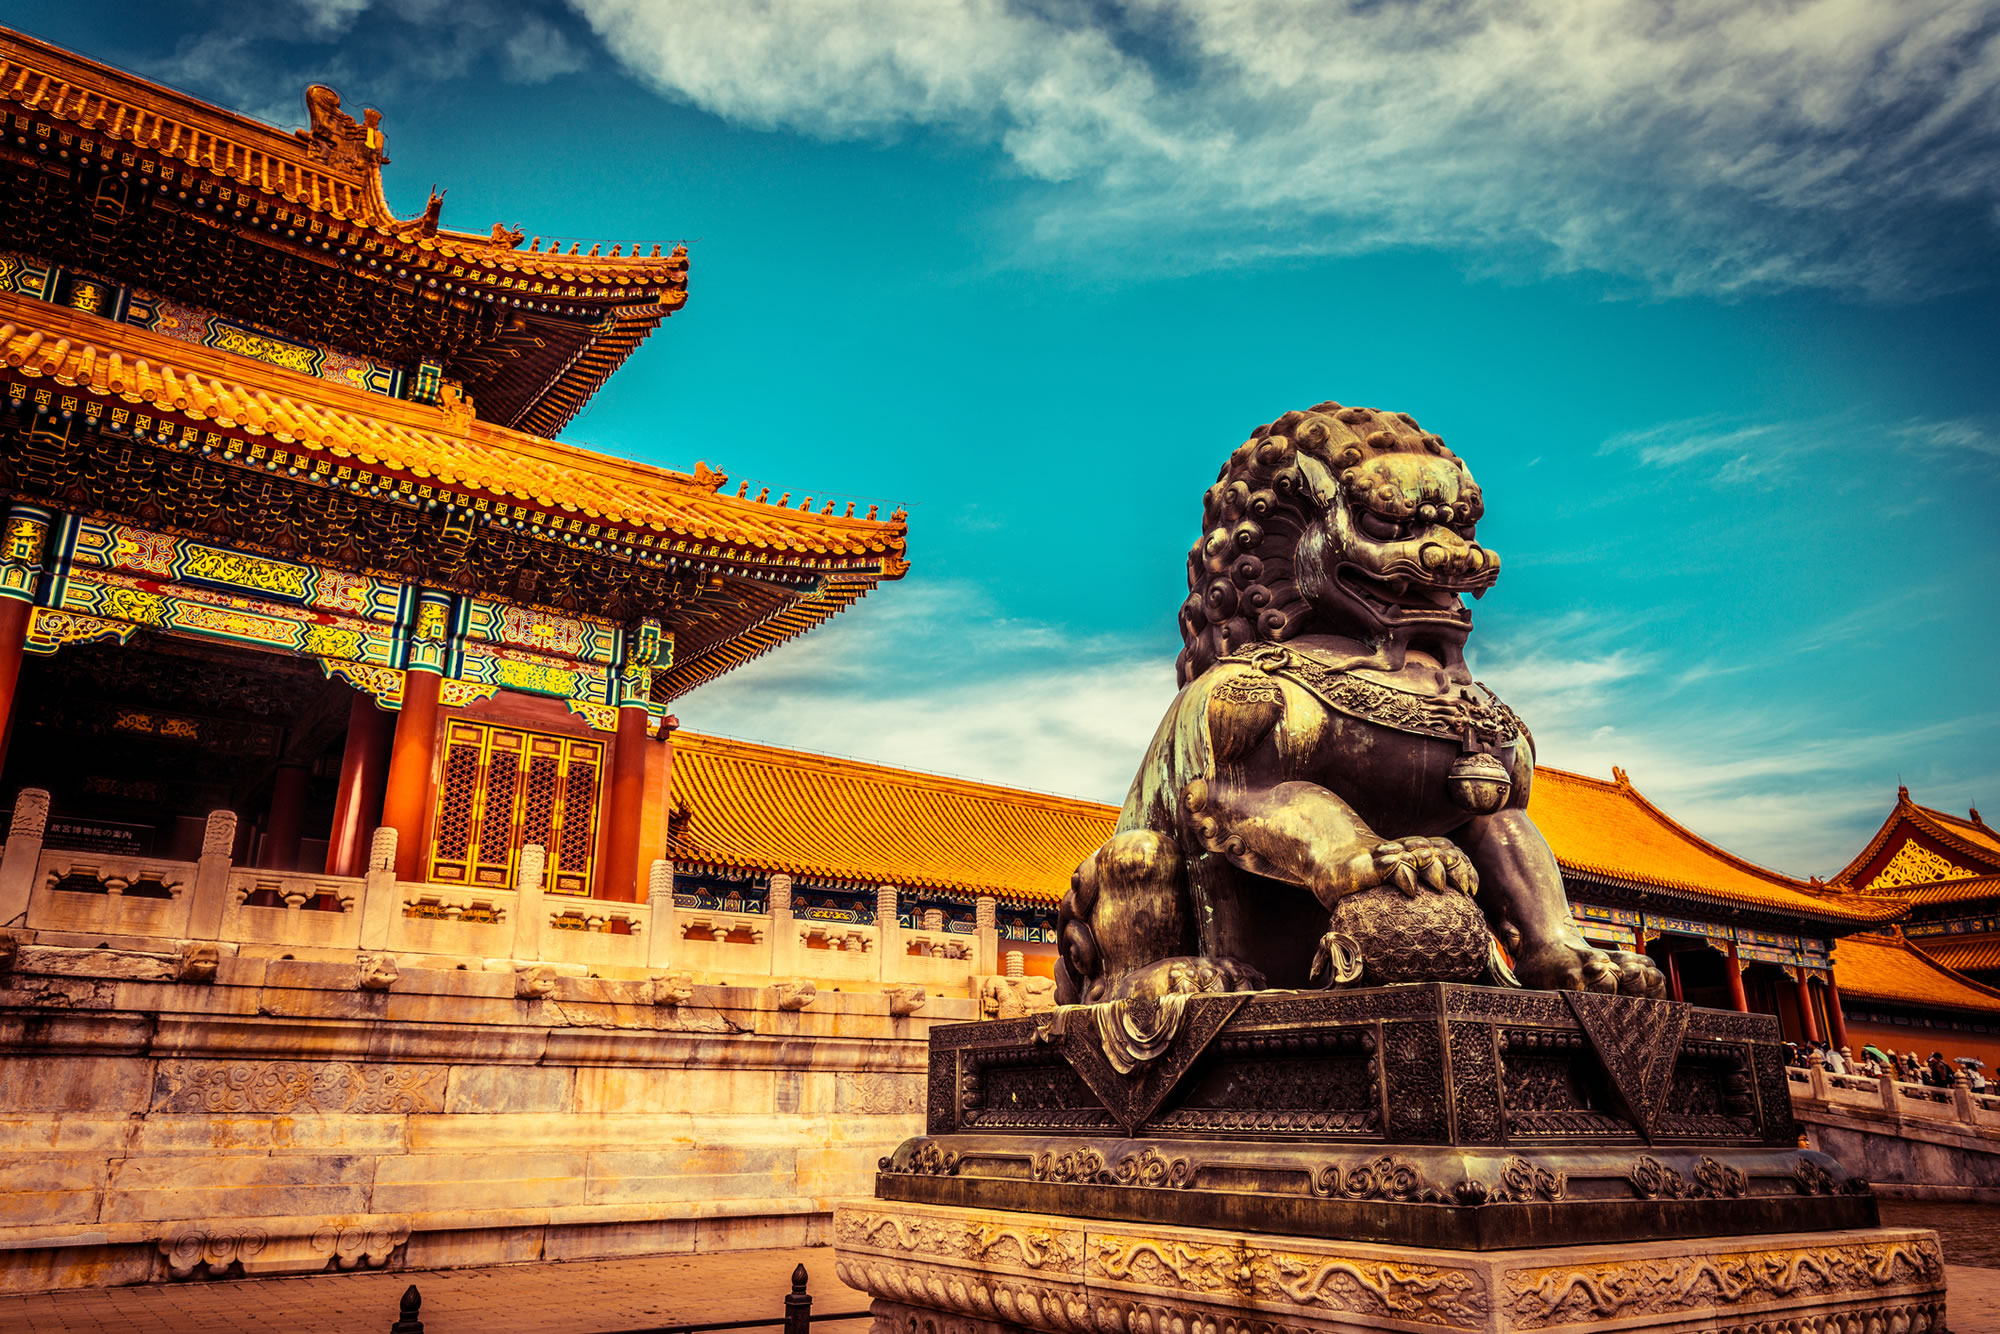 Explore the Forbidden City in Beijing, China